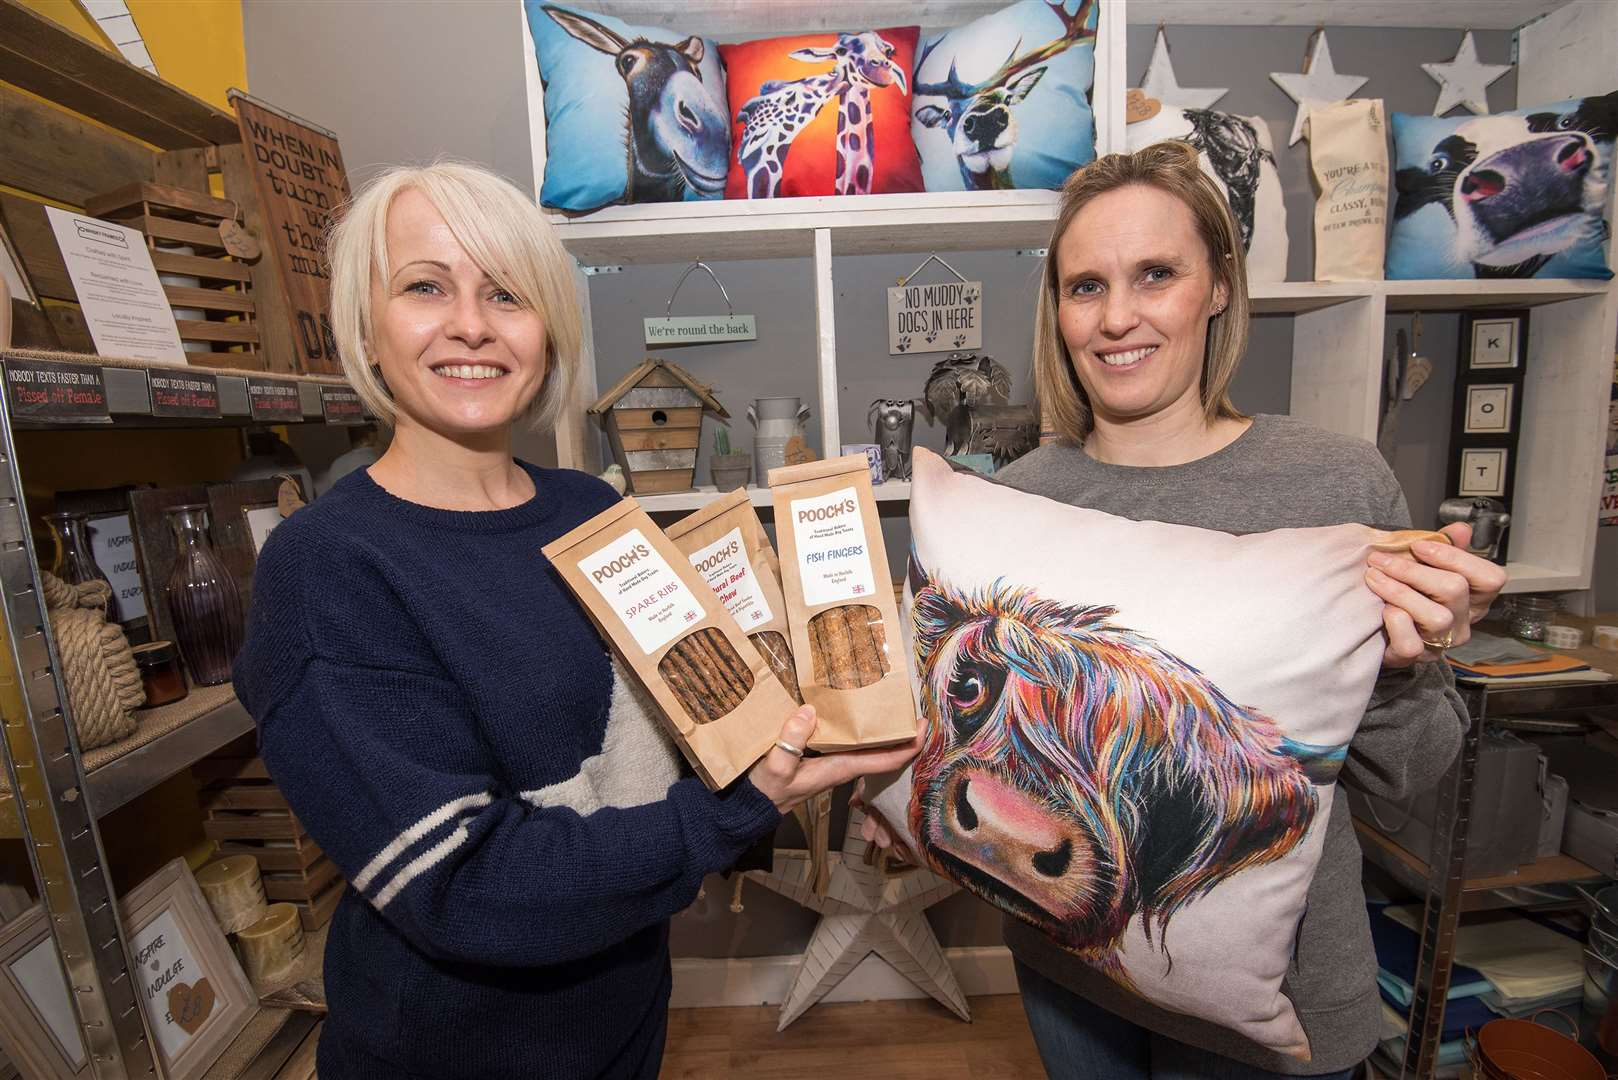 Bev and Tamara share some of the interesting items found inside their shop Koti